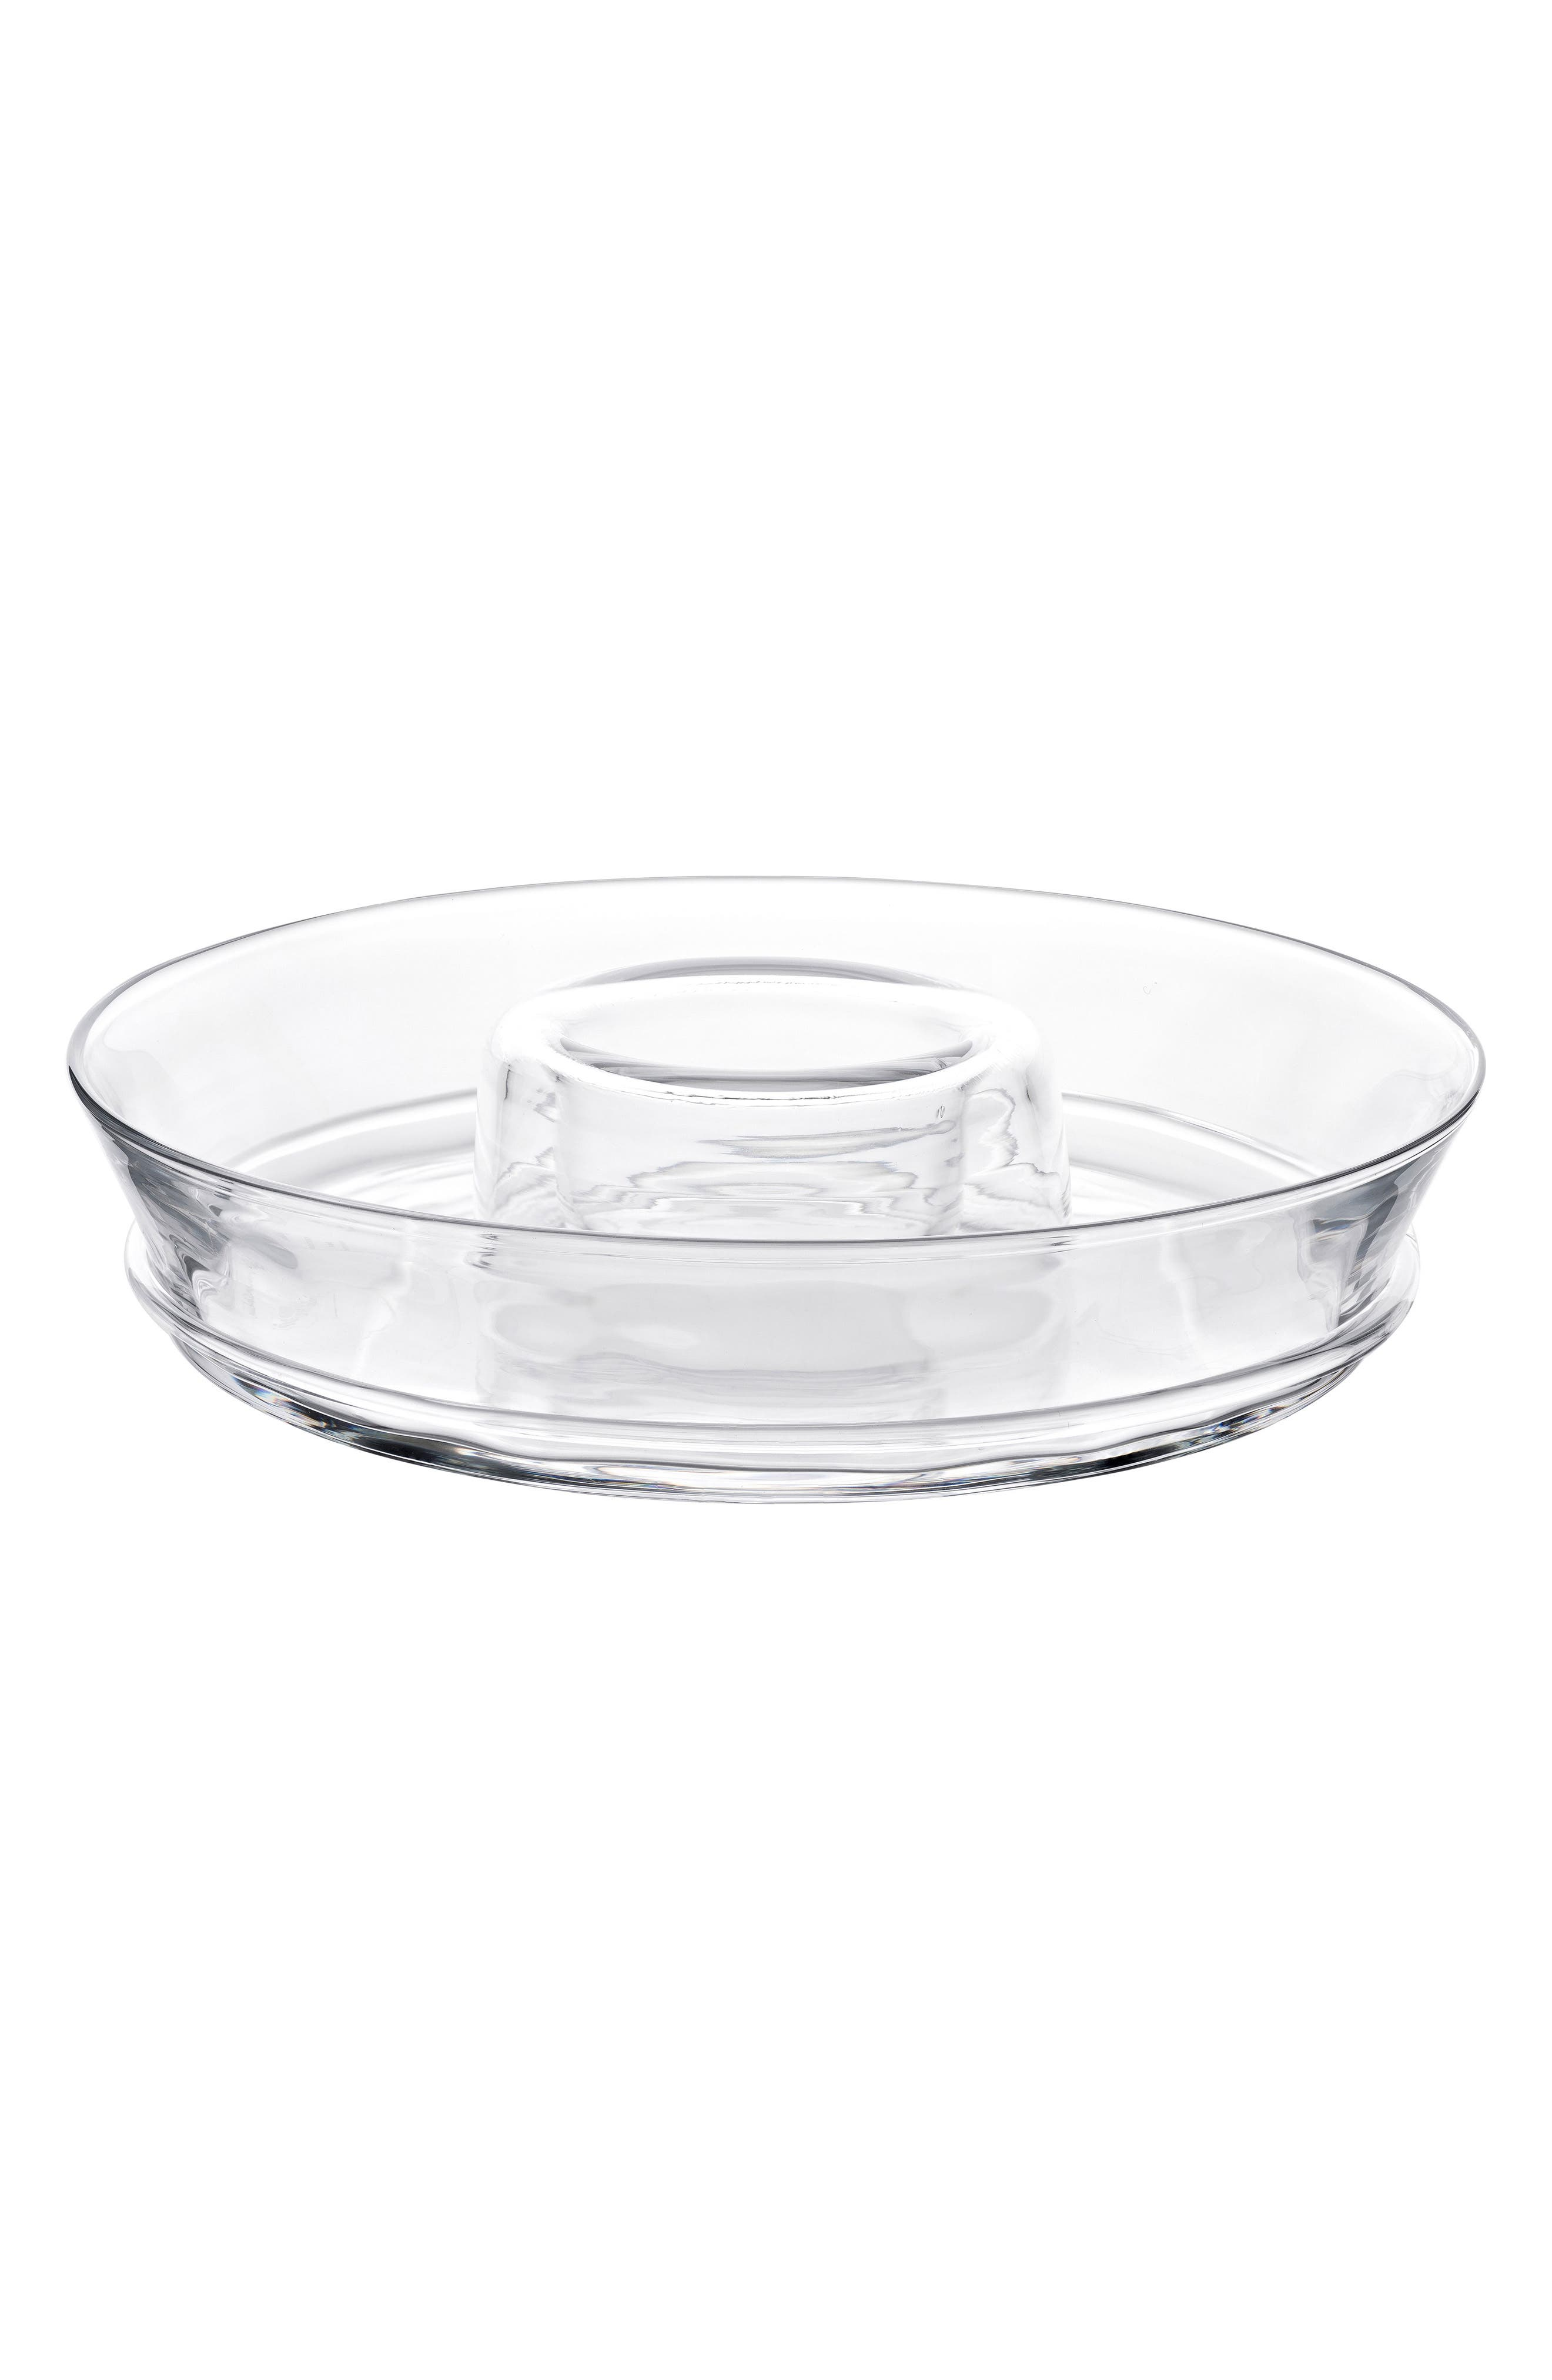 Carine Chip & Dip Serving Bowl,                         Main,                         color, CLEAR